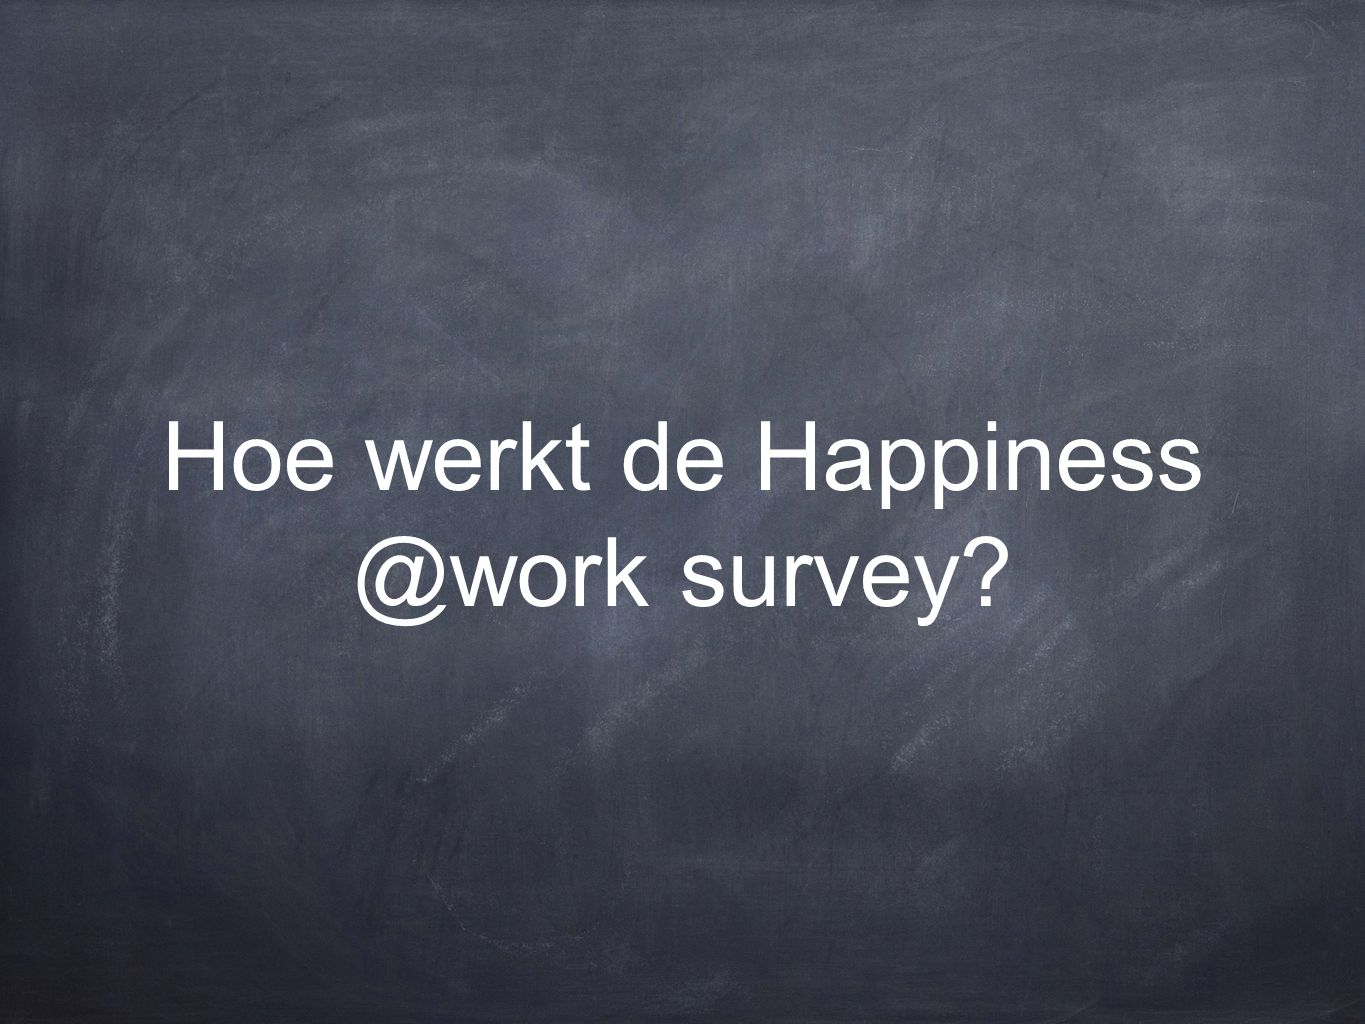 Hoe werkt de Happiness @work survey